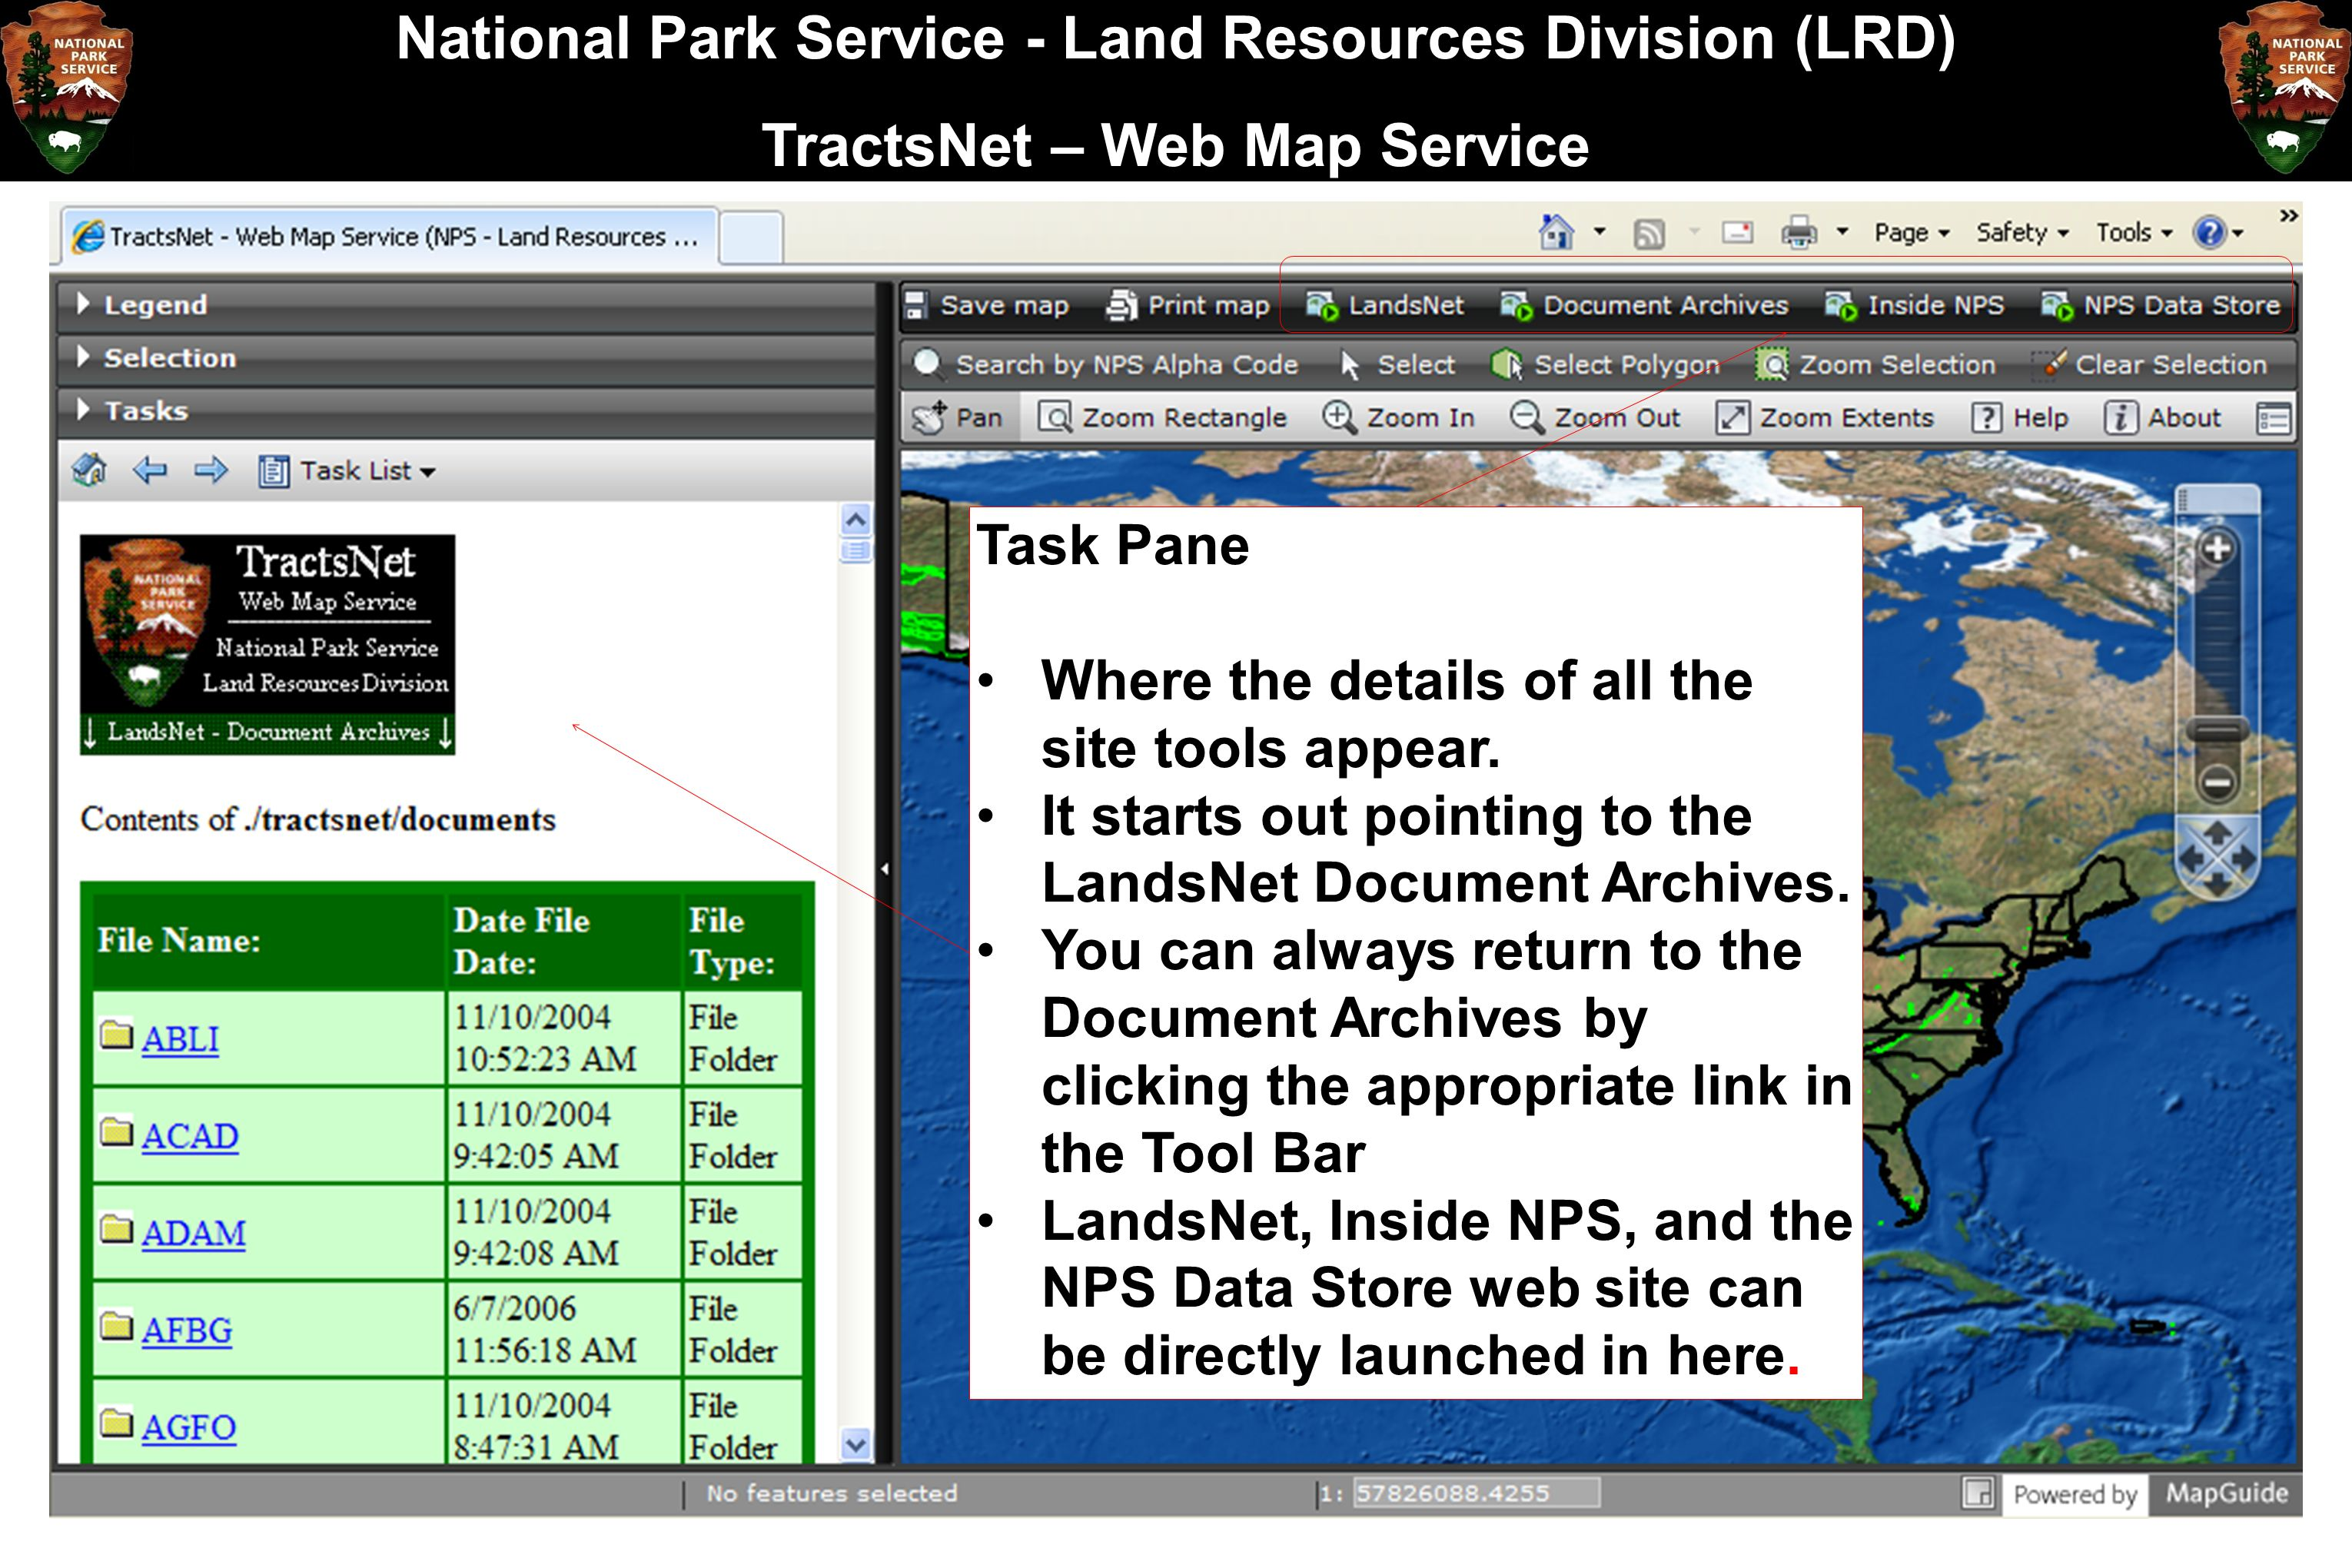 National Park Service - Land Resources Division (LRD) TractsNet – Web Map Service Task Pane Where the details of all the site tools appear. It starts